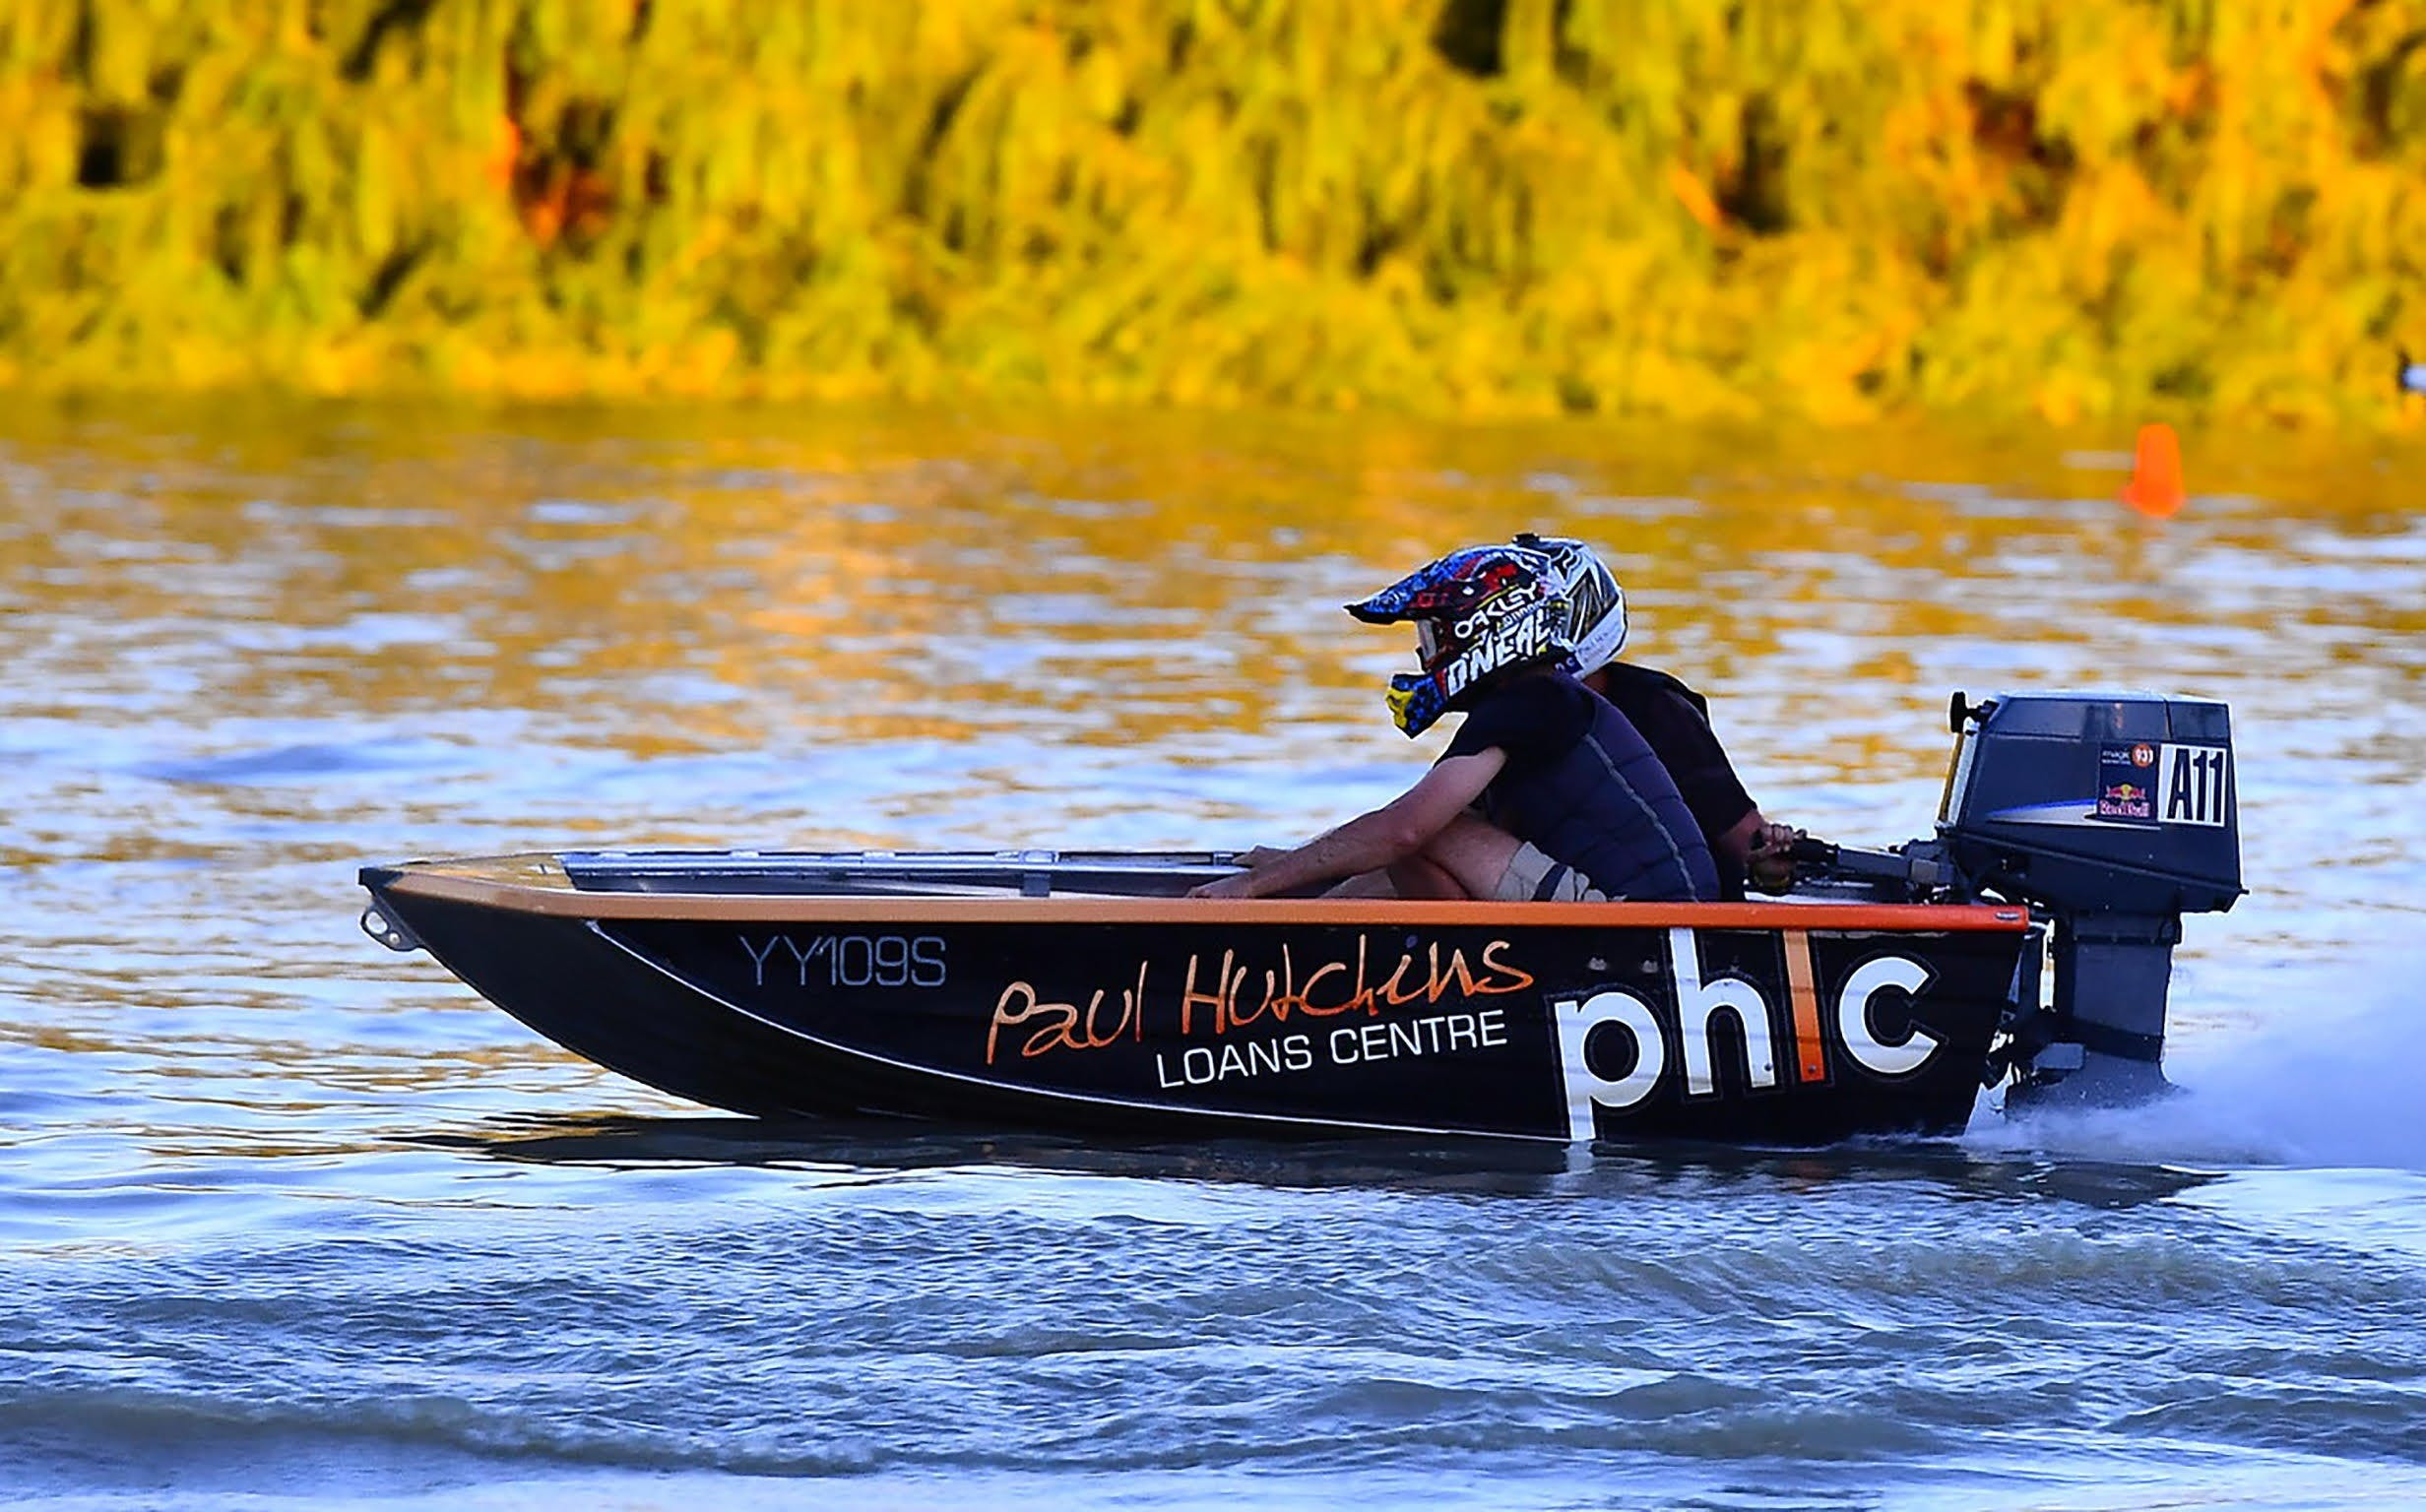 Round 6 Riverland Dinghy Club - The Paul Hutchins Loan Centre Hunchee Run - Pubs and Clubs